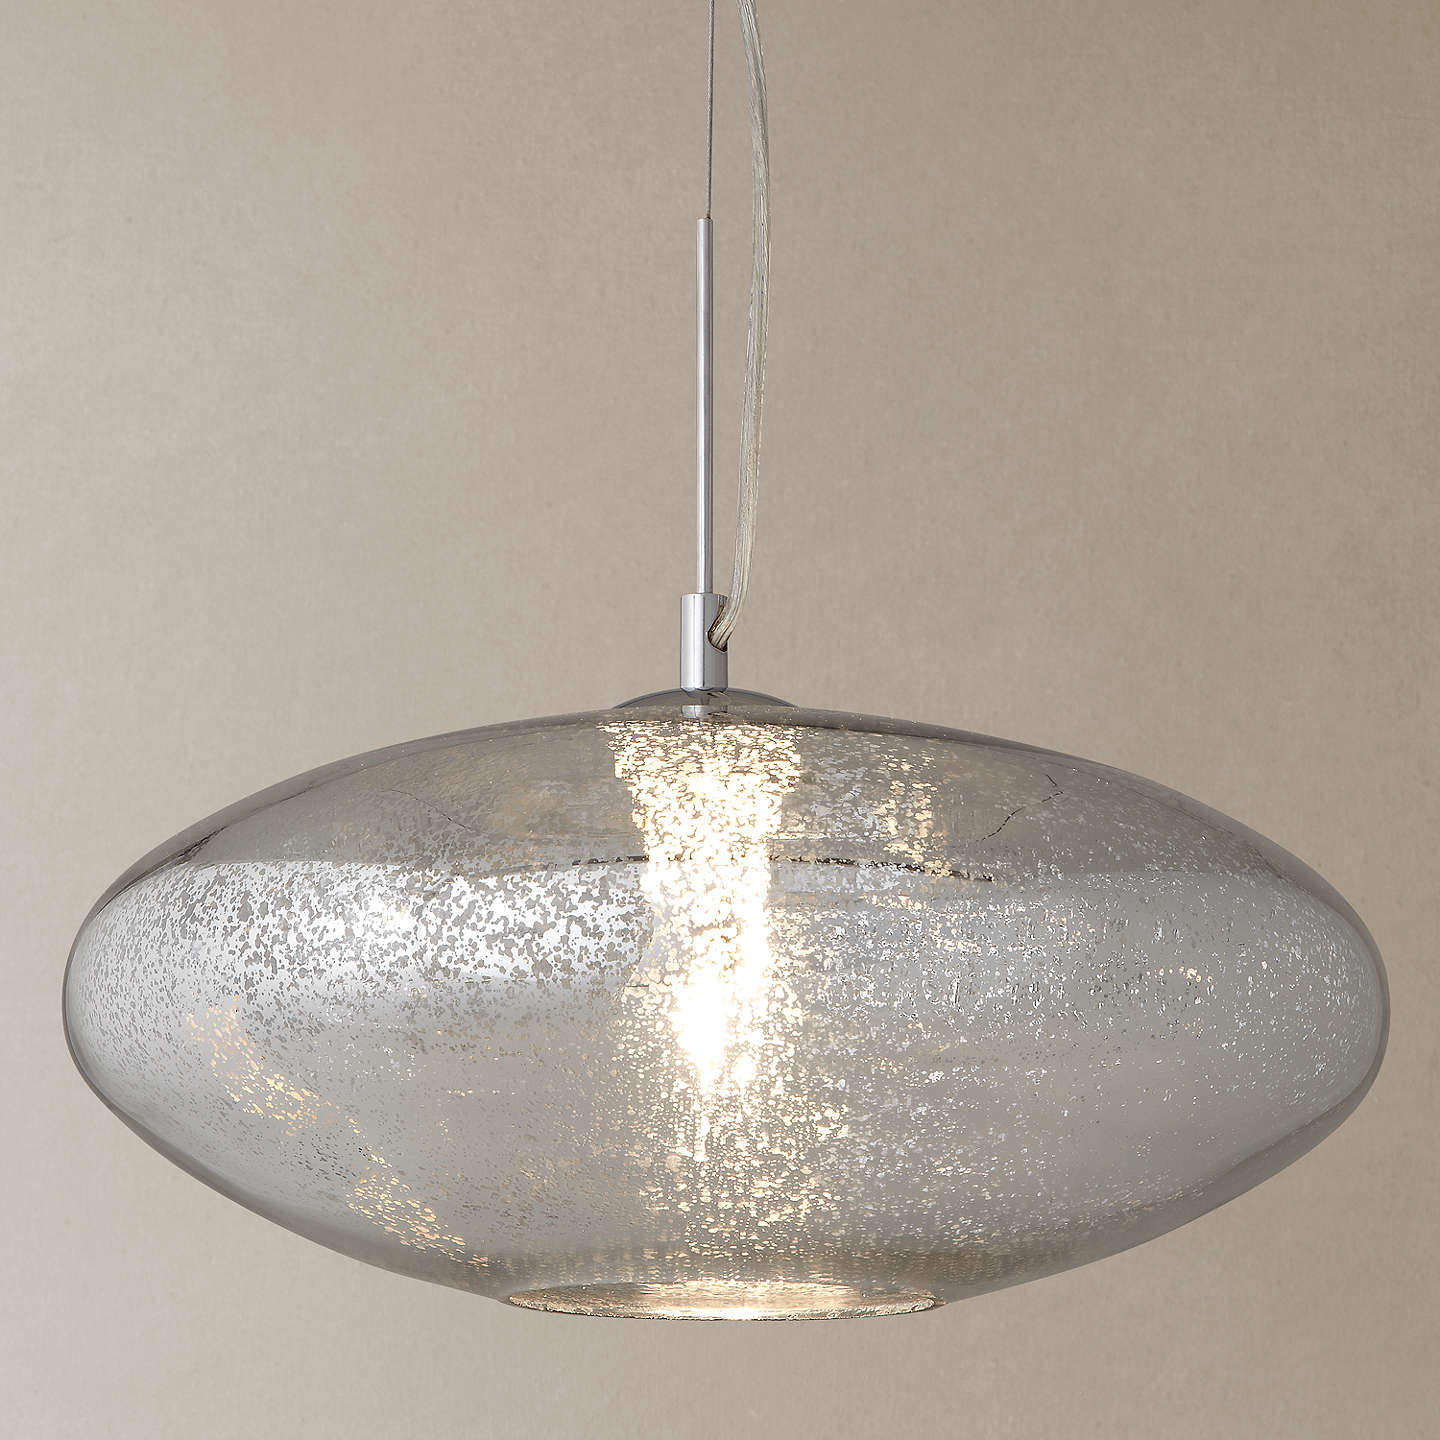 unique oil glass design full finish light fixture of pendant modern metal style rubbed material size mercury accessories endearing bronze